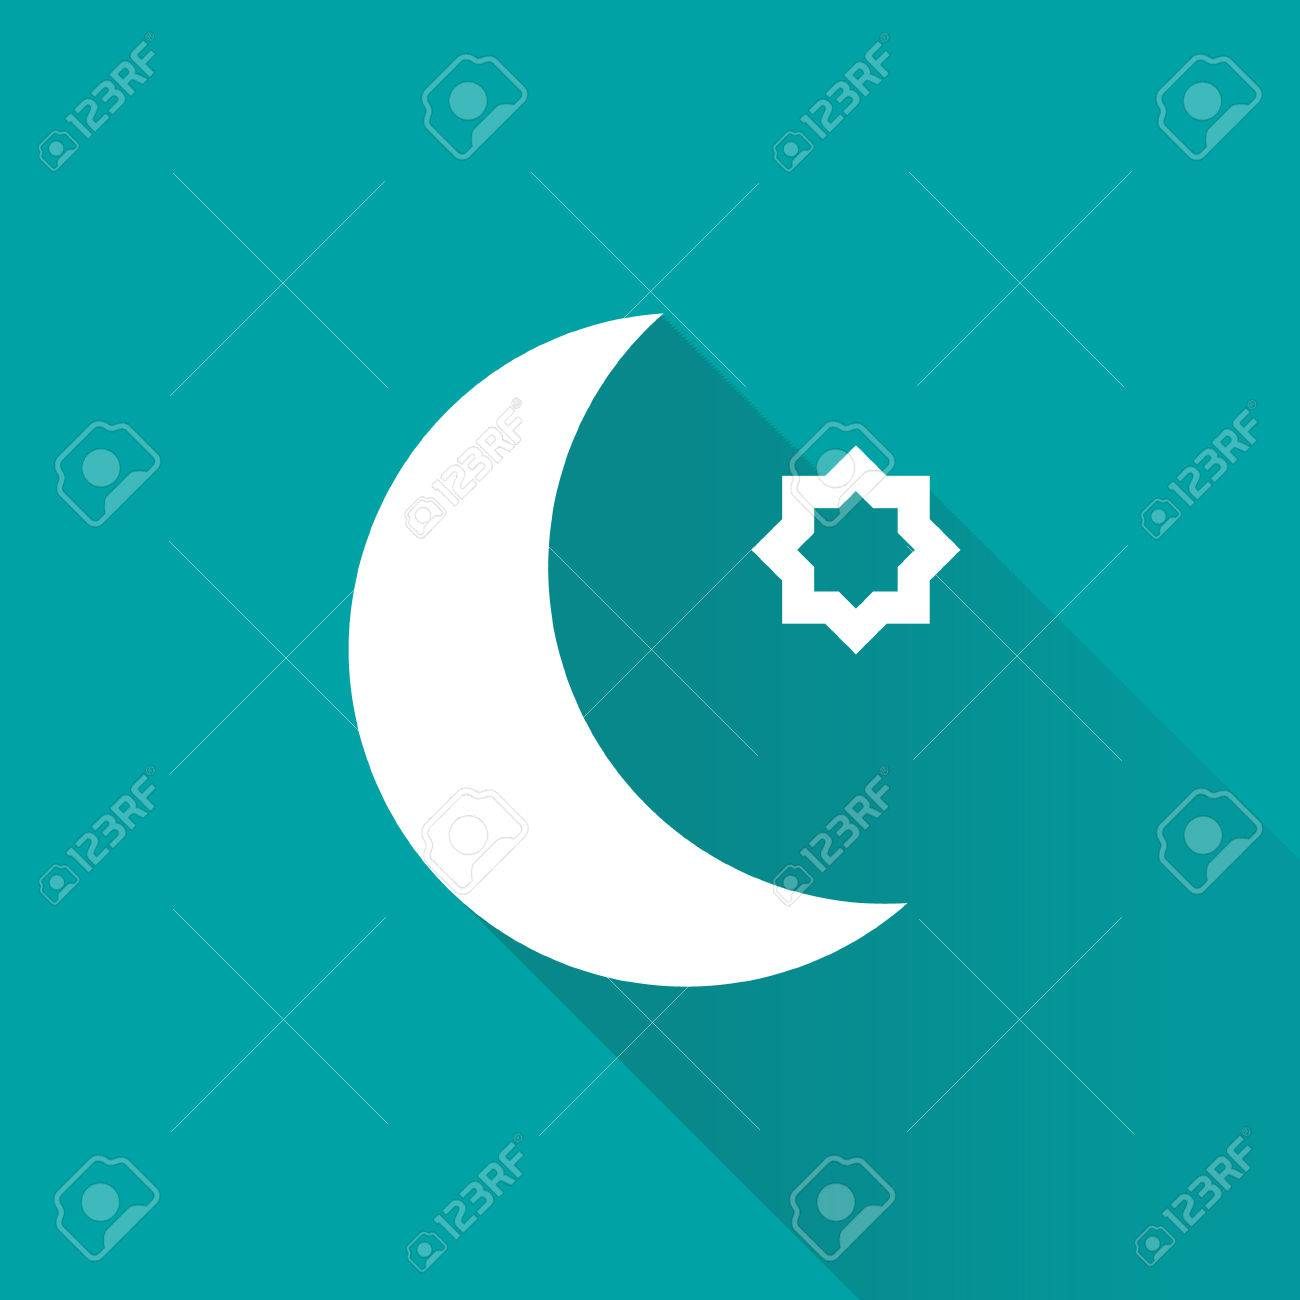 Stars And Crescent On Blue Background Symbol Of Islam Moon